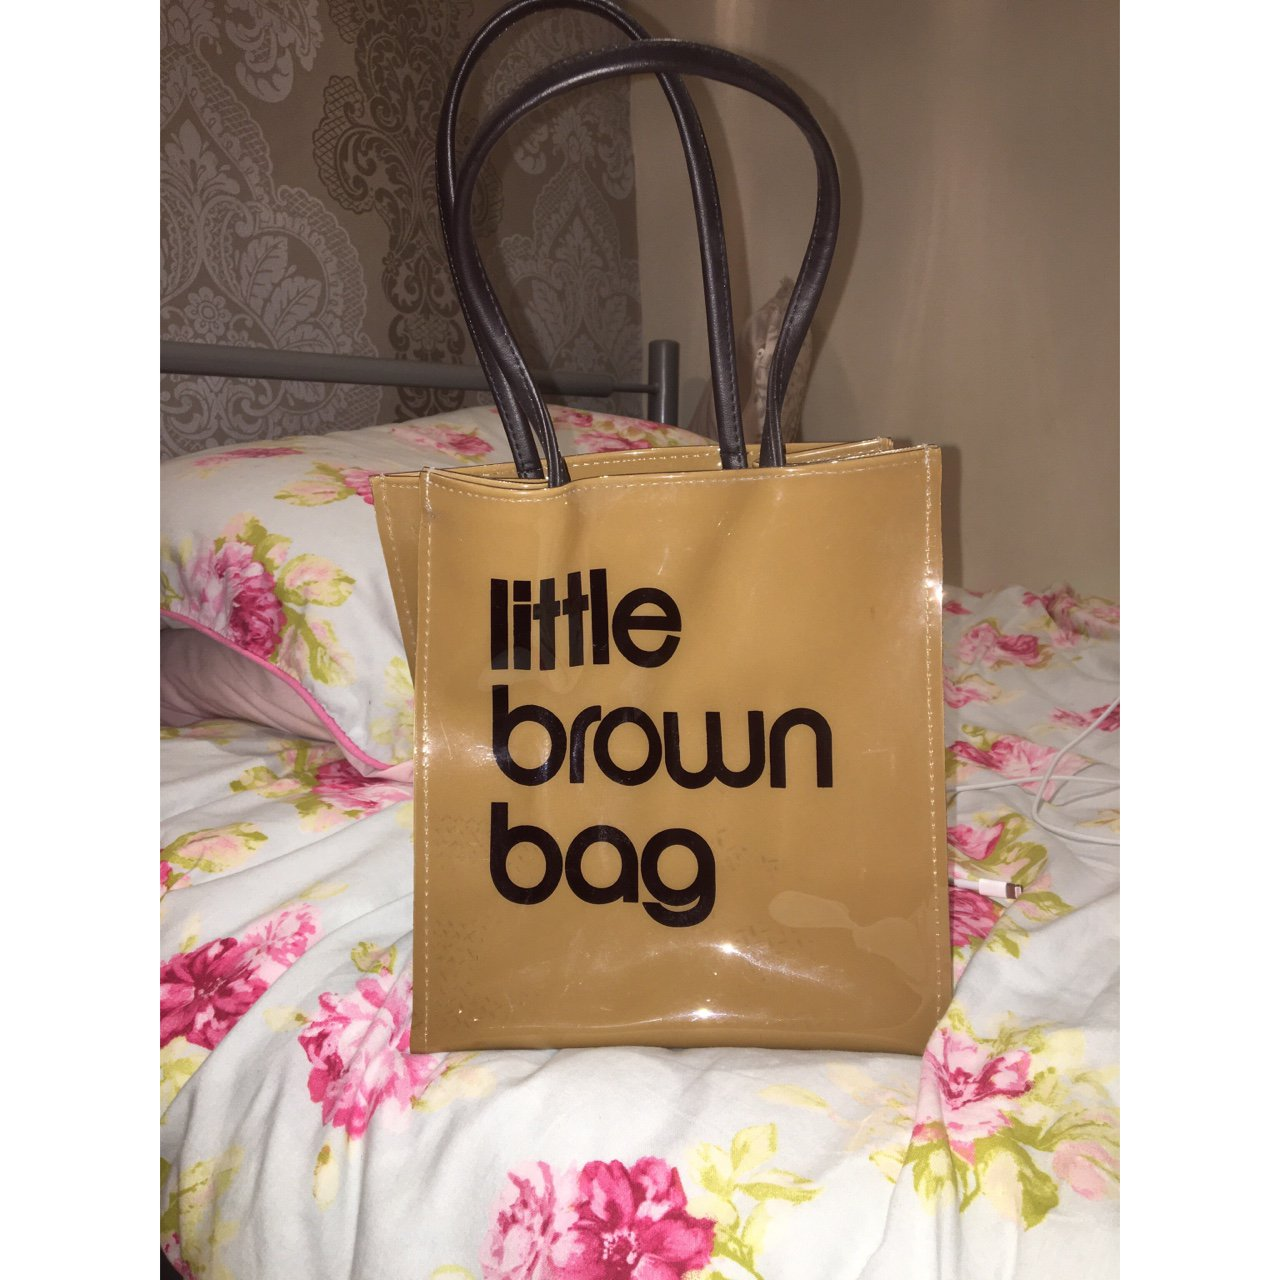 74e591eb7903 Bloomingdales little brown bag never used perfect size for depop jpg  1280x1280 Bloomindales bag